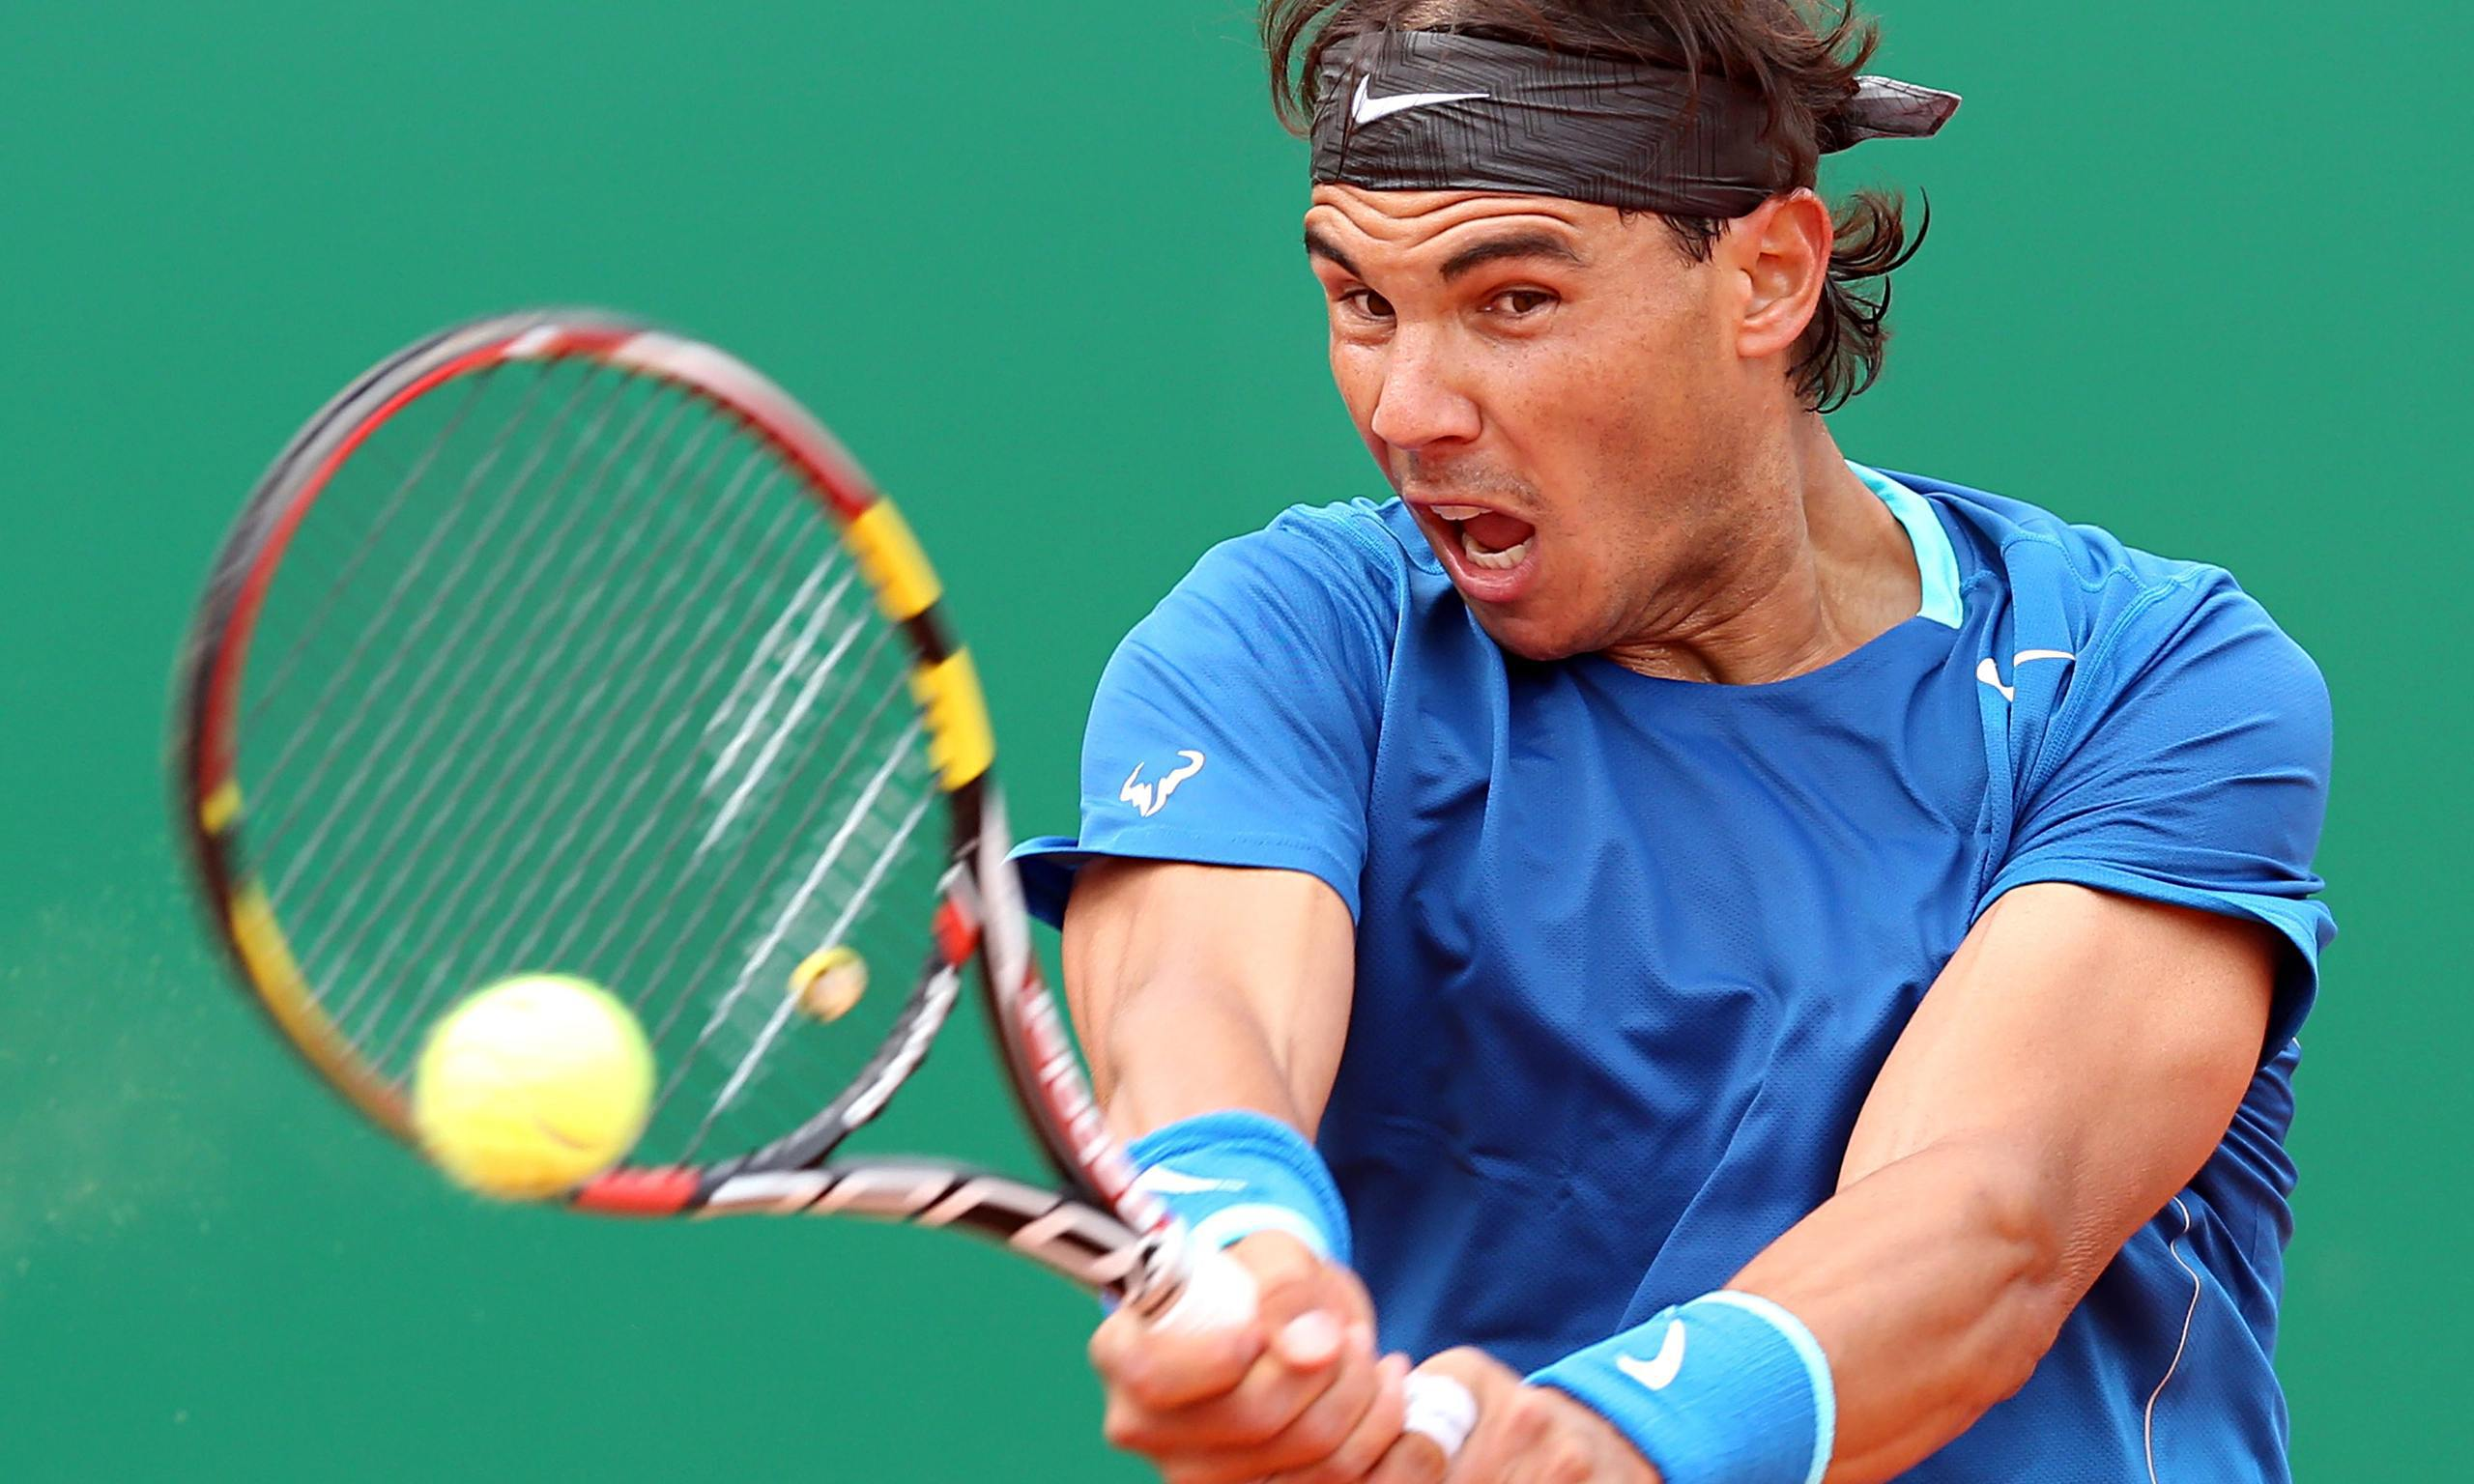 Rafael Nadal Image: Rafael Nadal Wallpapers Images Photos Pictures Backgrounds